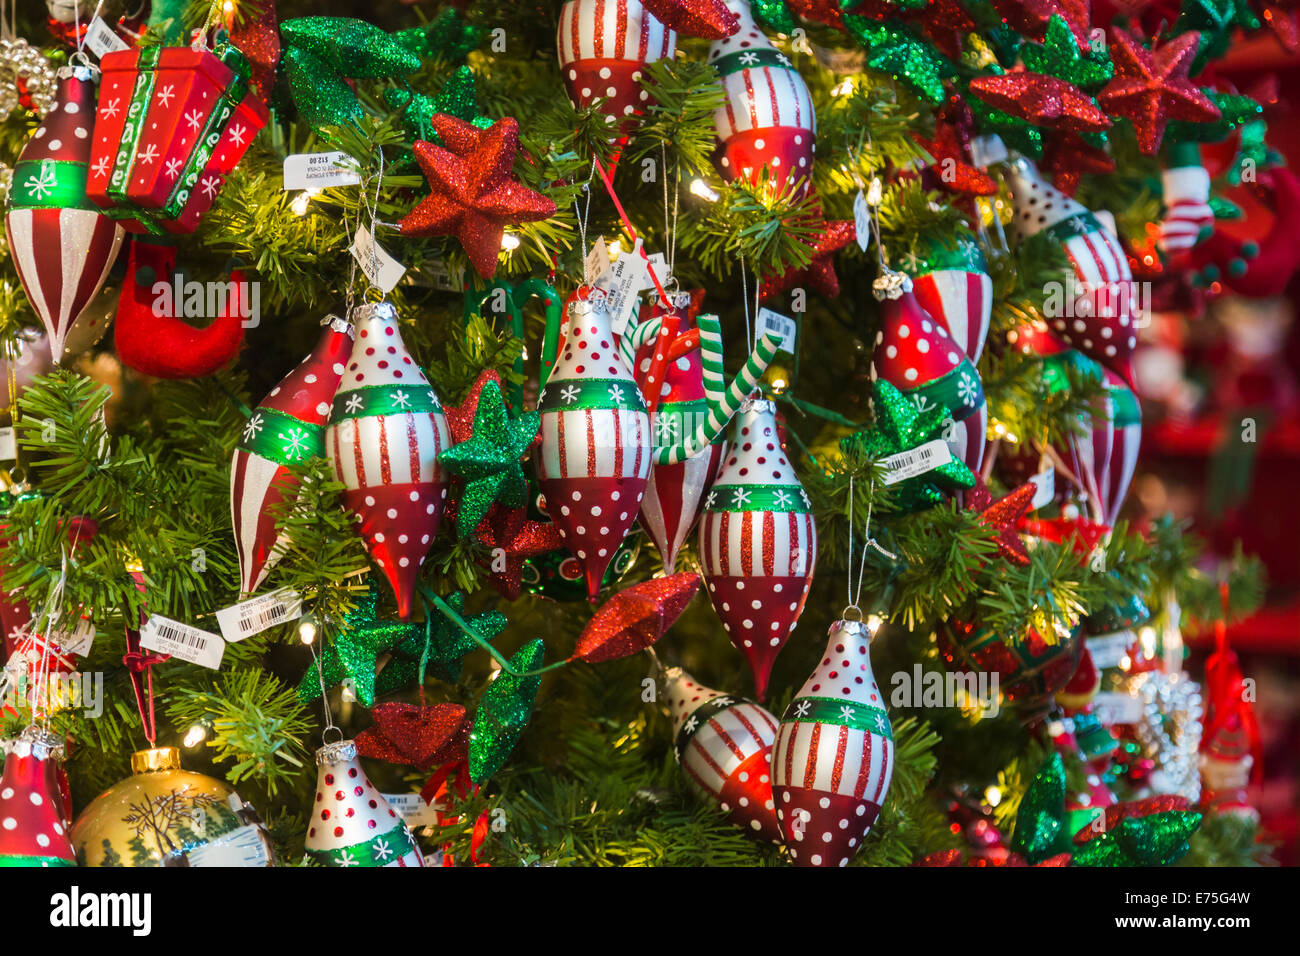 Colourful Red, Green And White Christmas Decorations On A Xmas Tree In A  Display In A Shop In New York City, USA